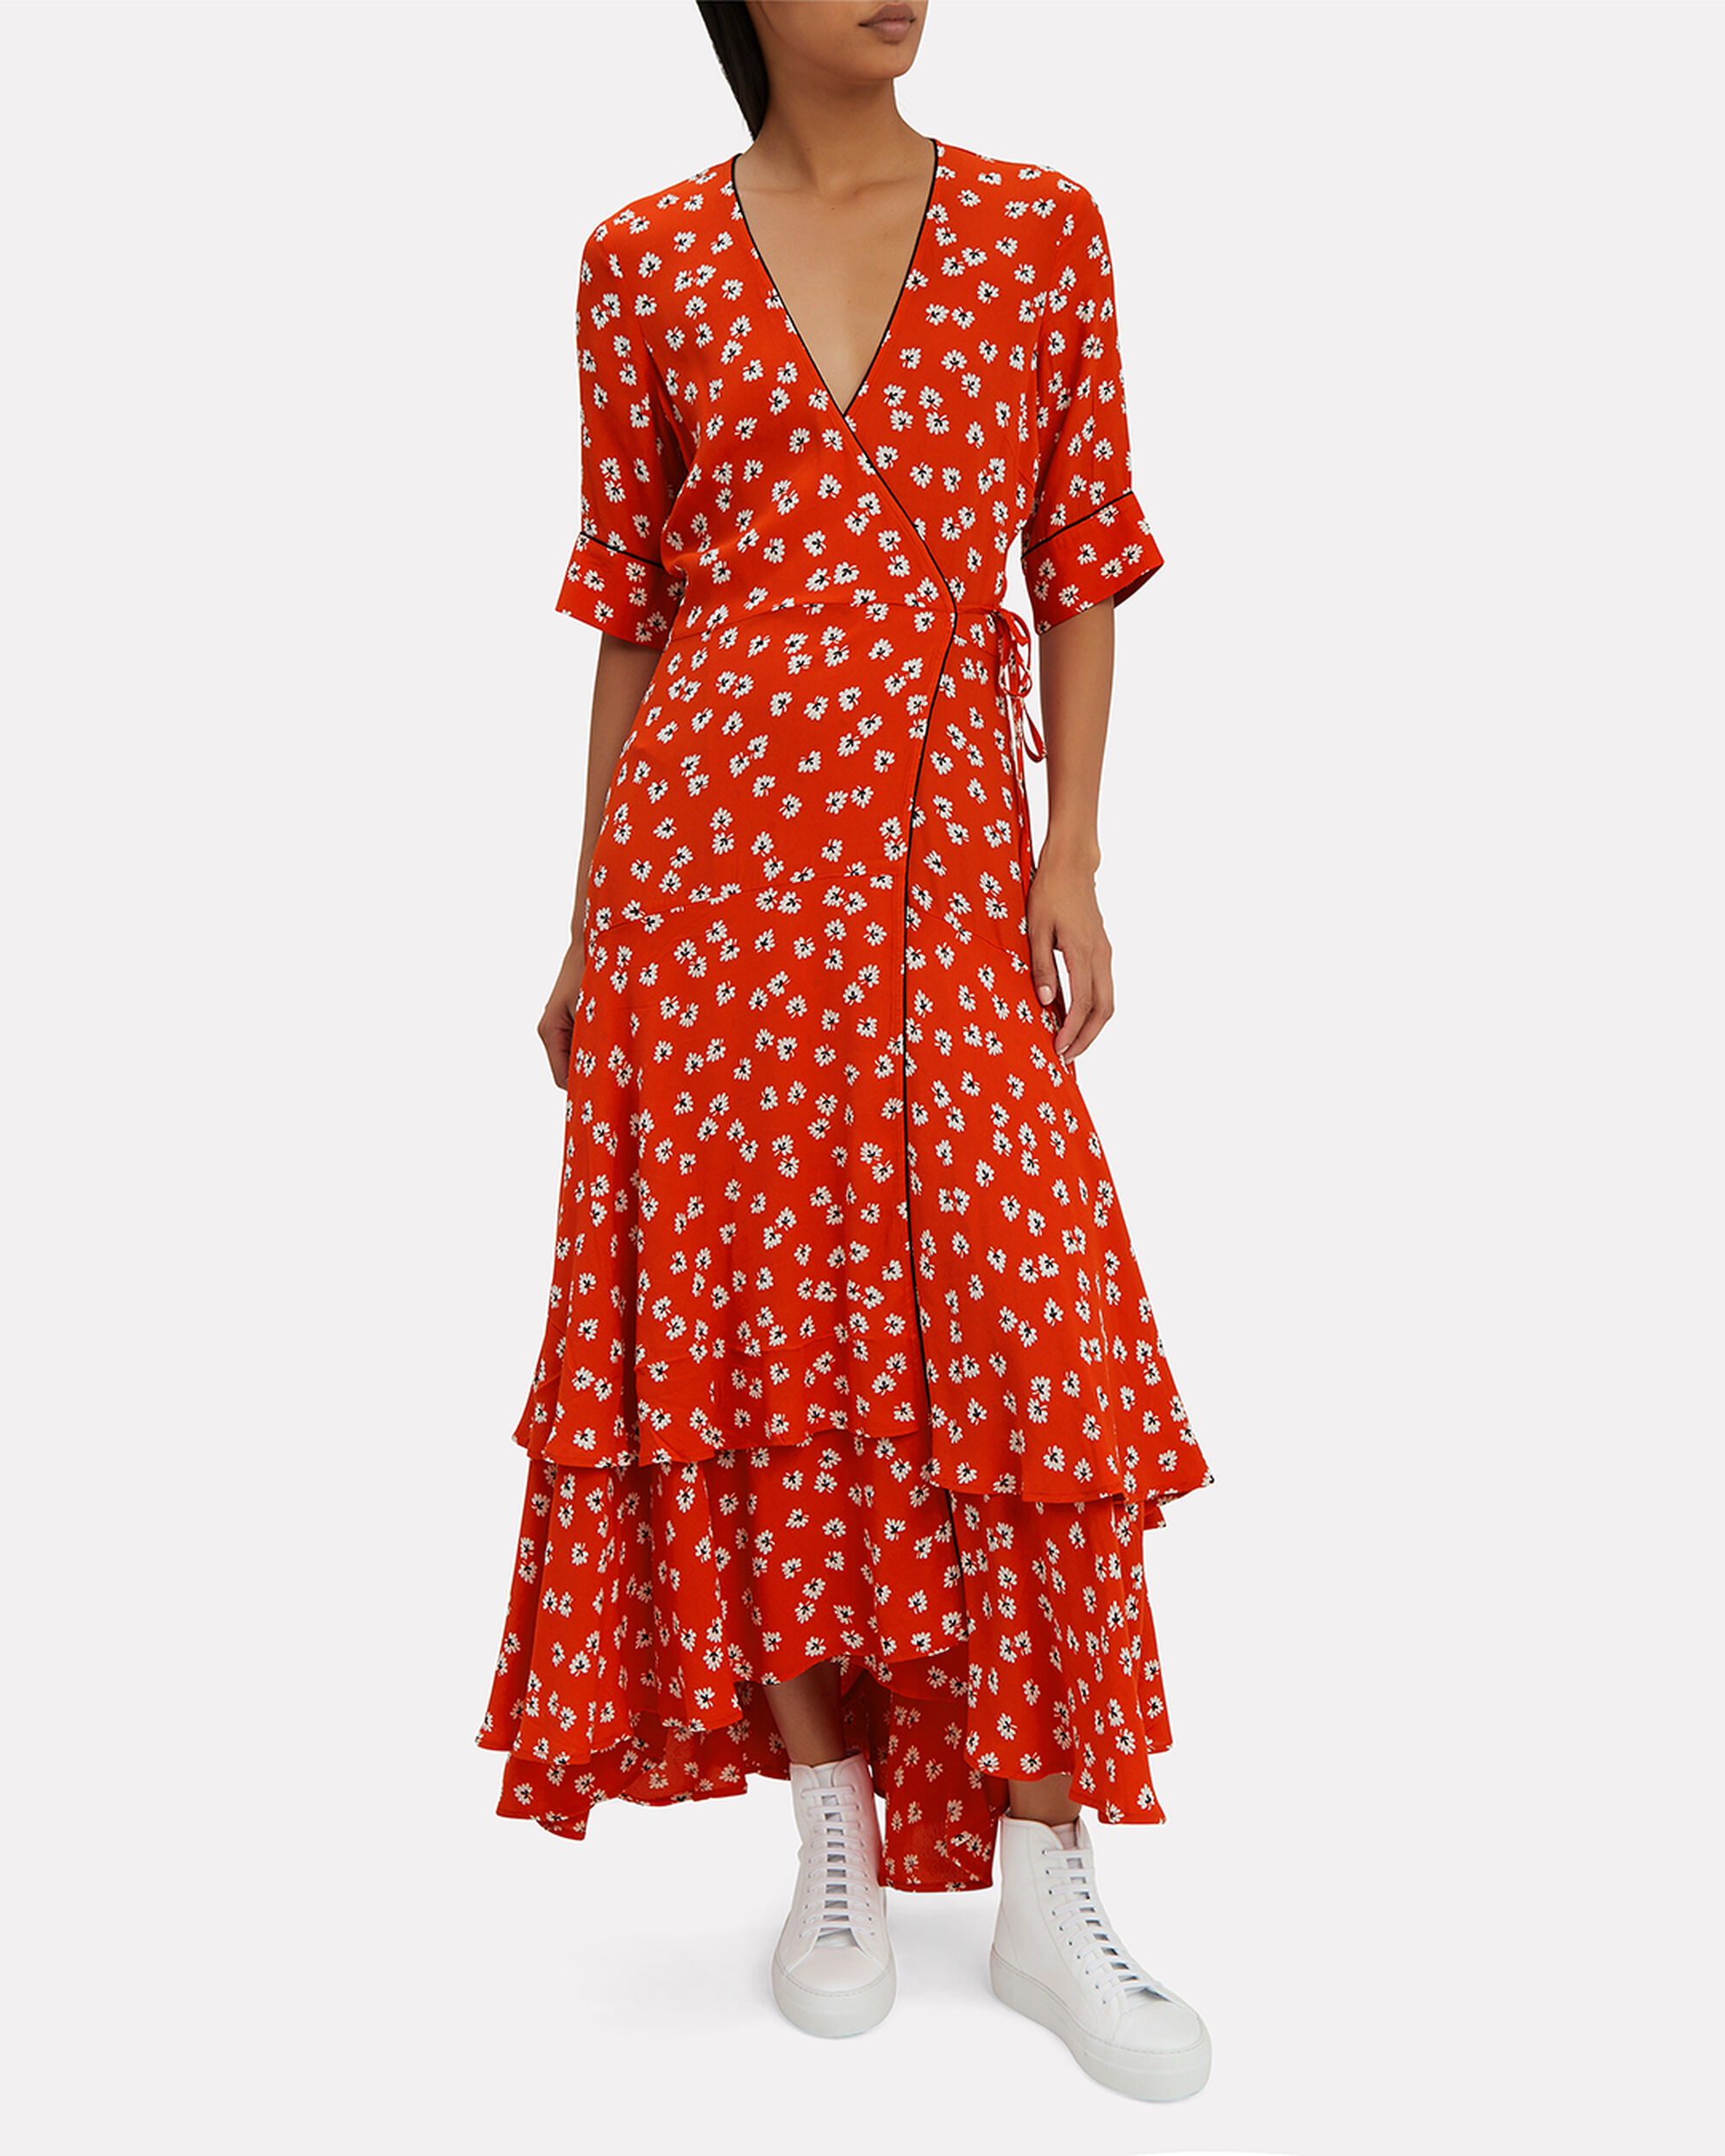 Big Apple Red Ruffle Hem Dress, RED, hi-res